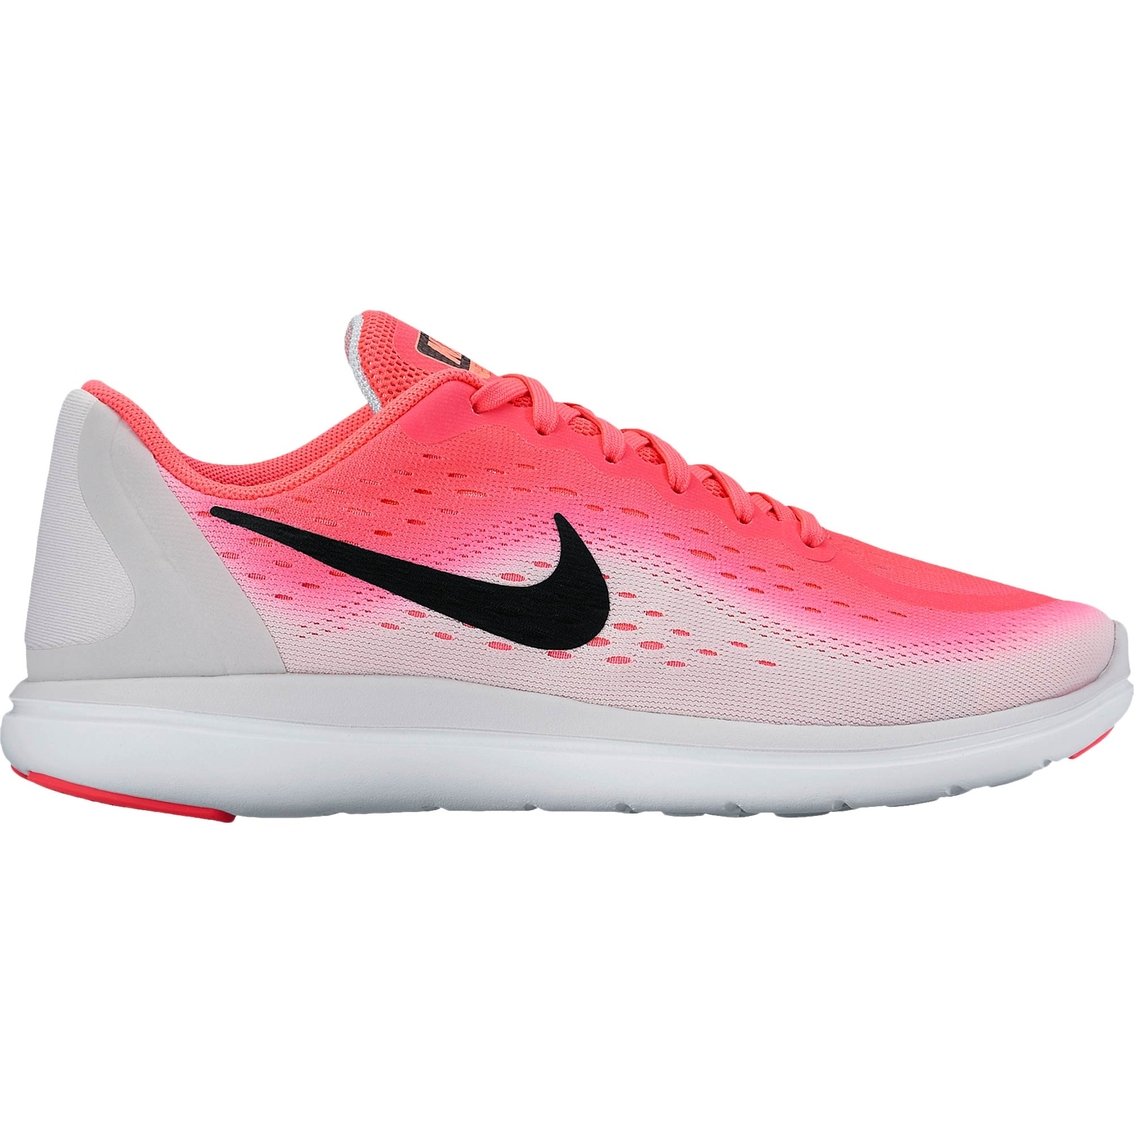 66653fa0a1 Nike Grade School Girls Flex Run 2017 Running Shoes | Children's ...